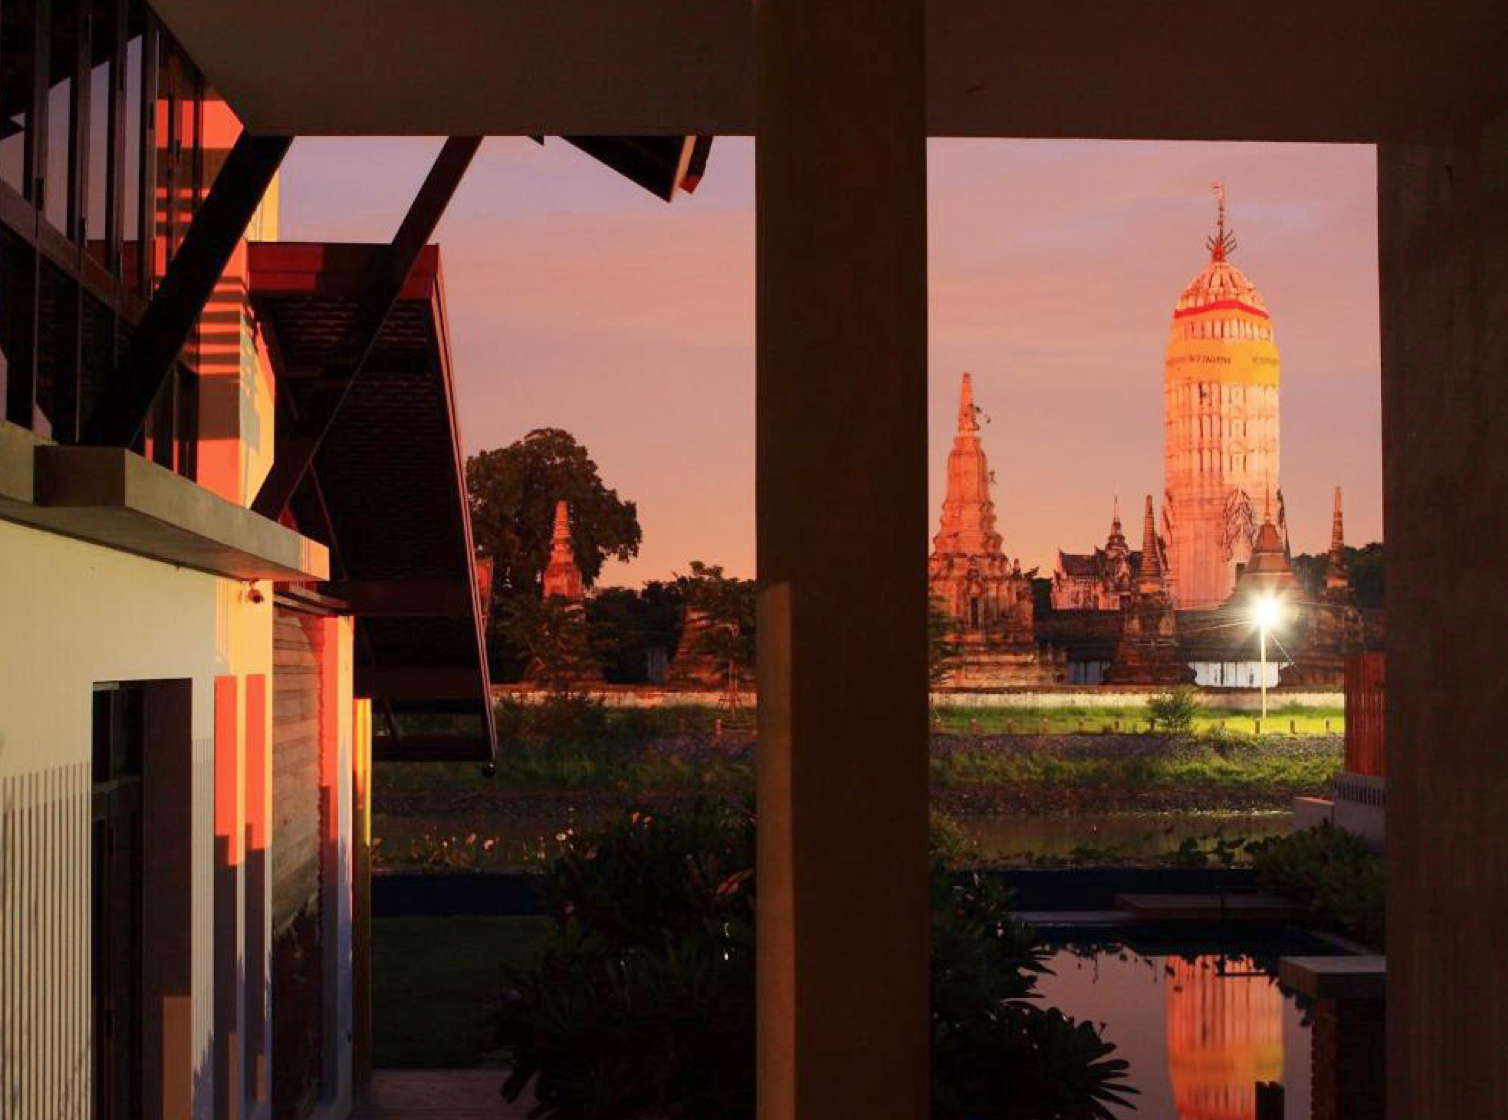 One of our top picks in Phra Nakhon Si Ayutthaya